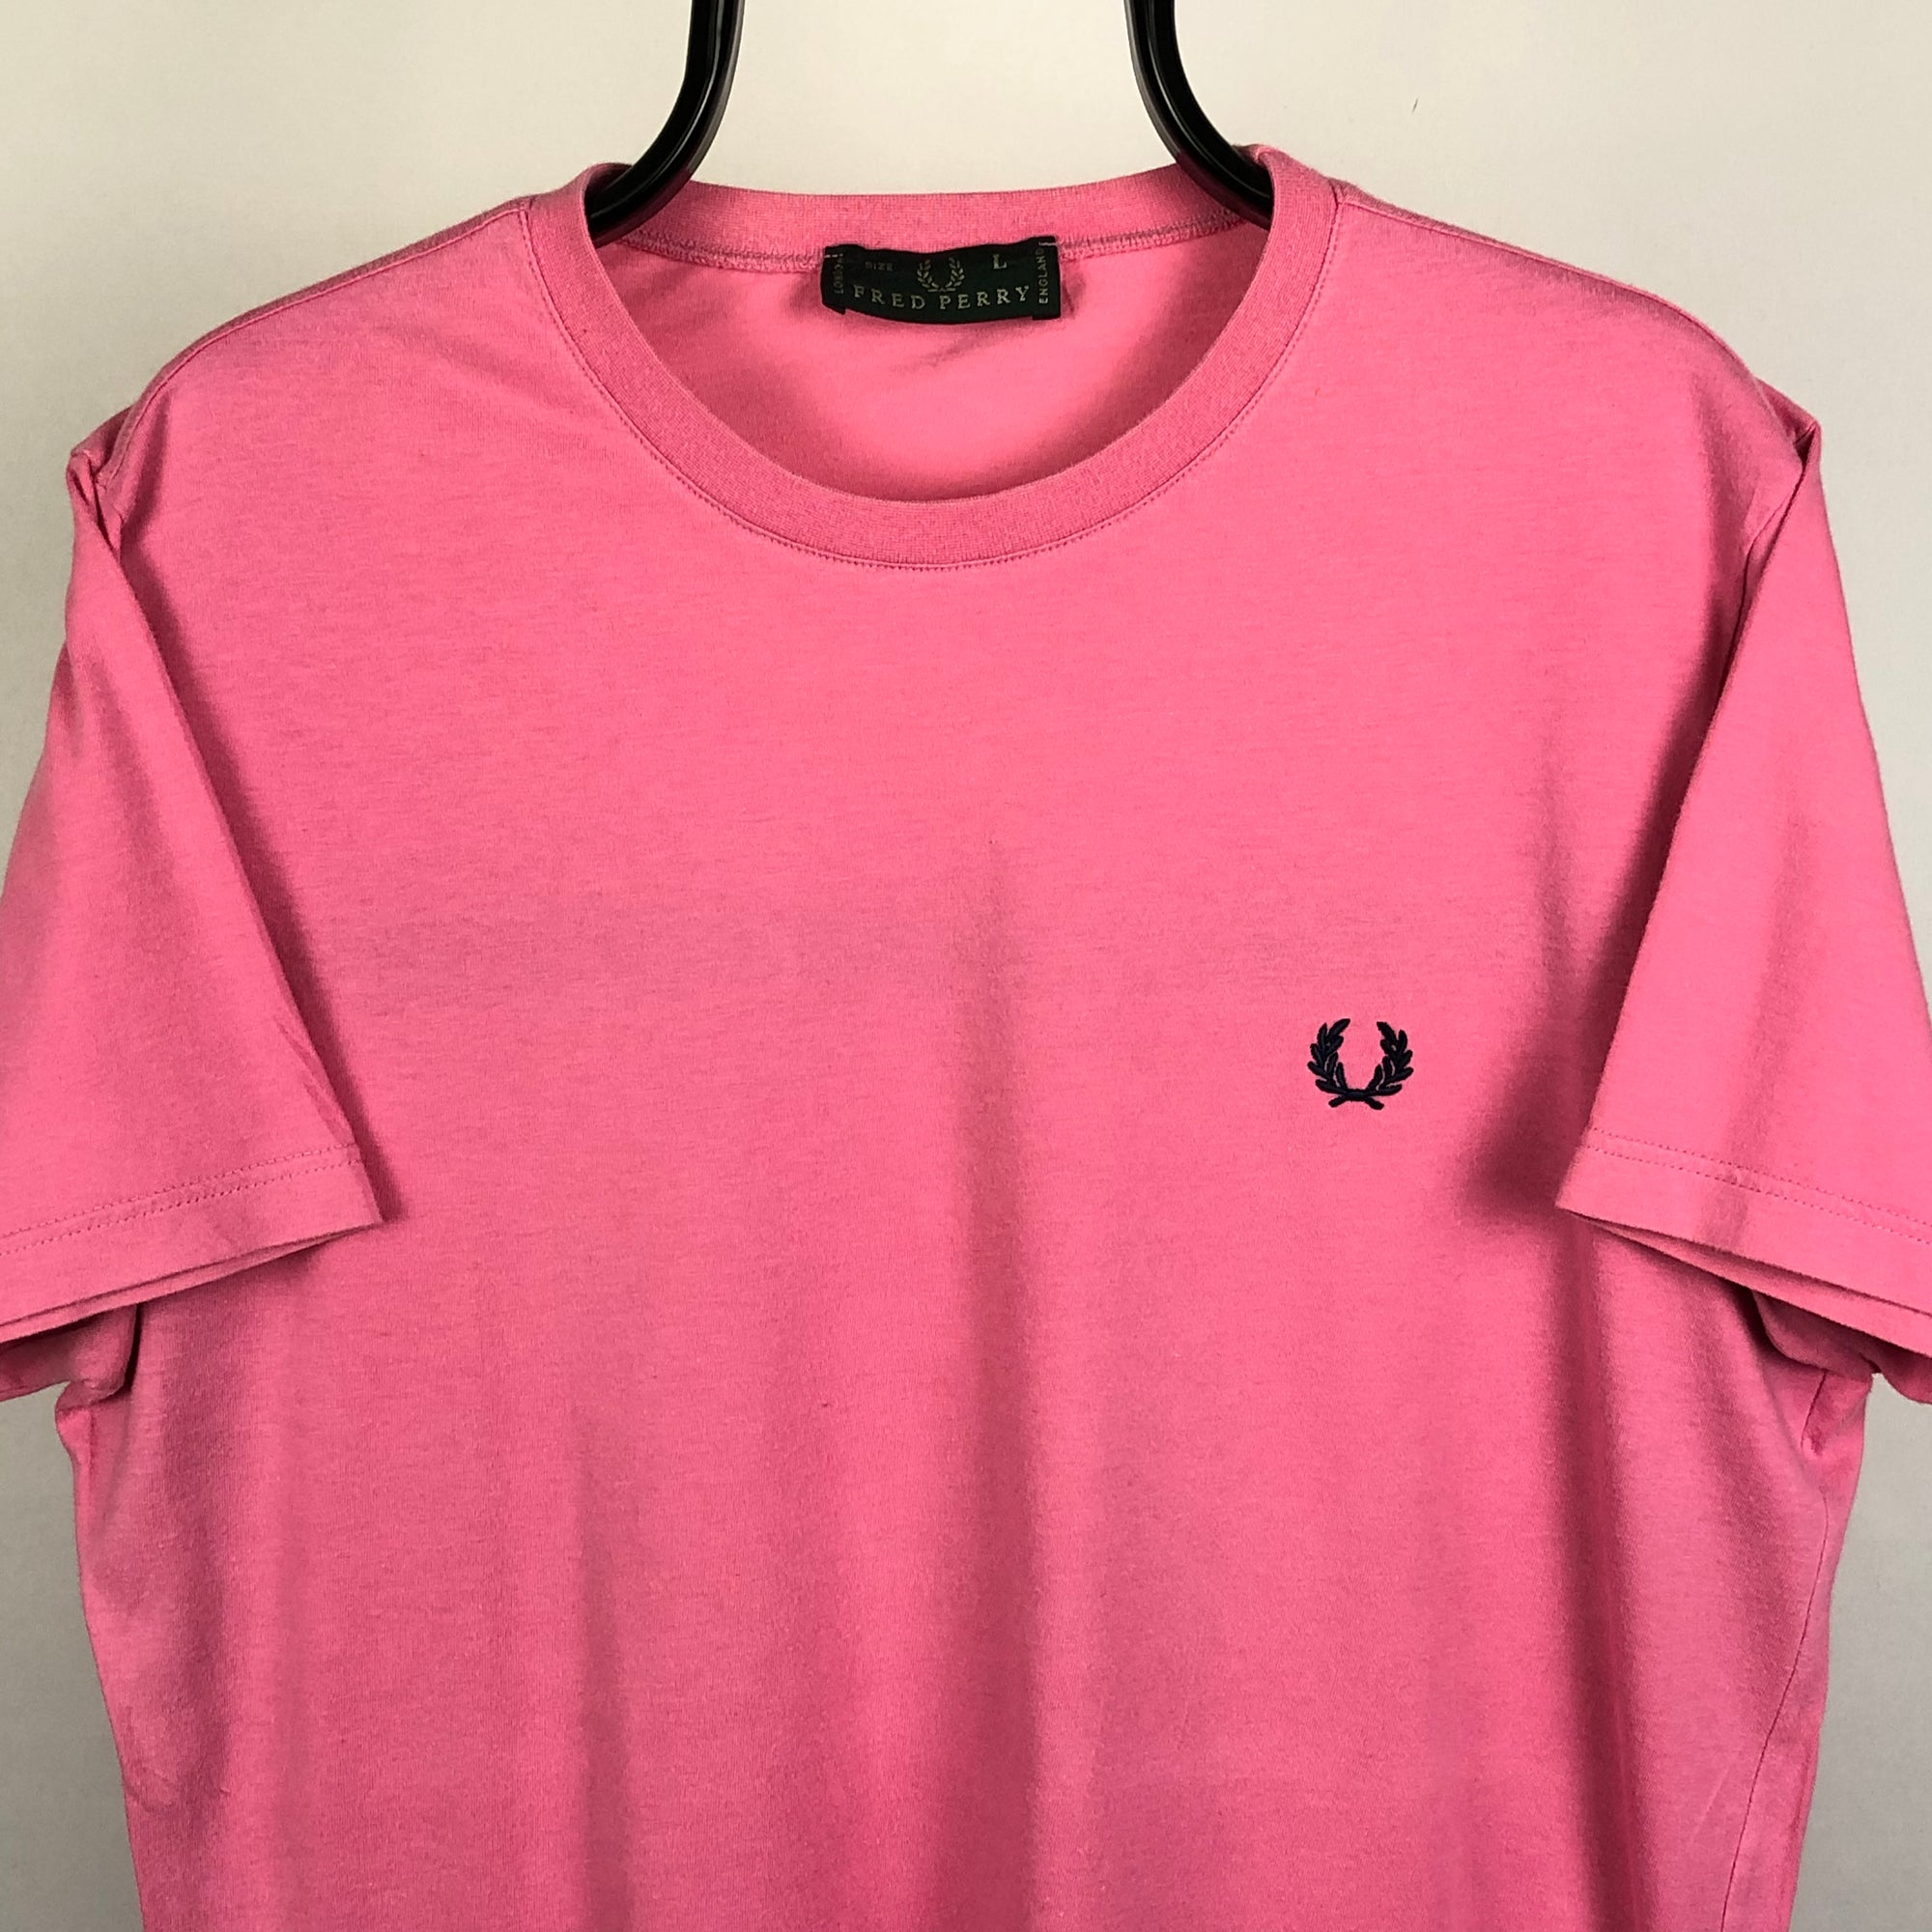 Vintage Fred Perry  Tee in Pink - Men's Large/Women's XL